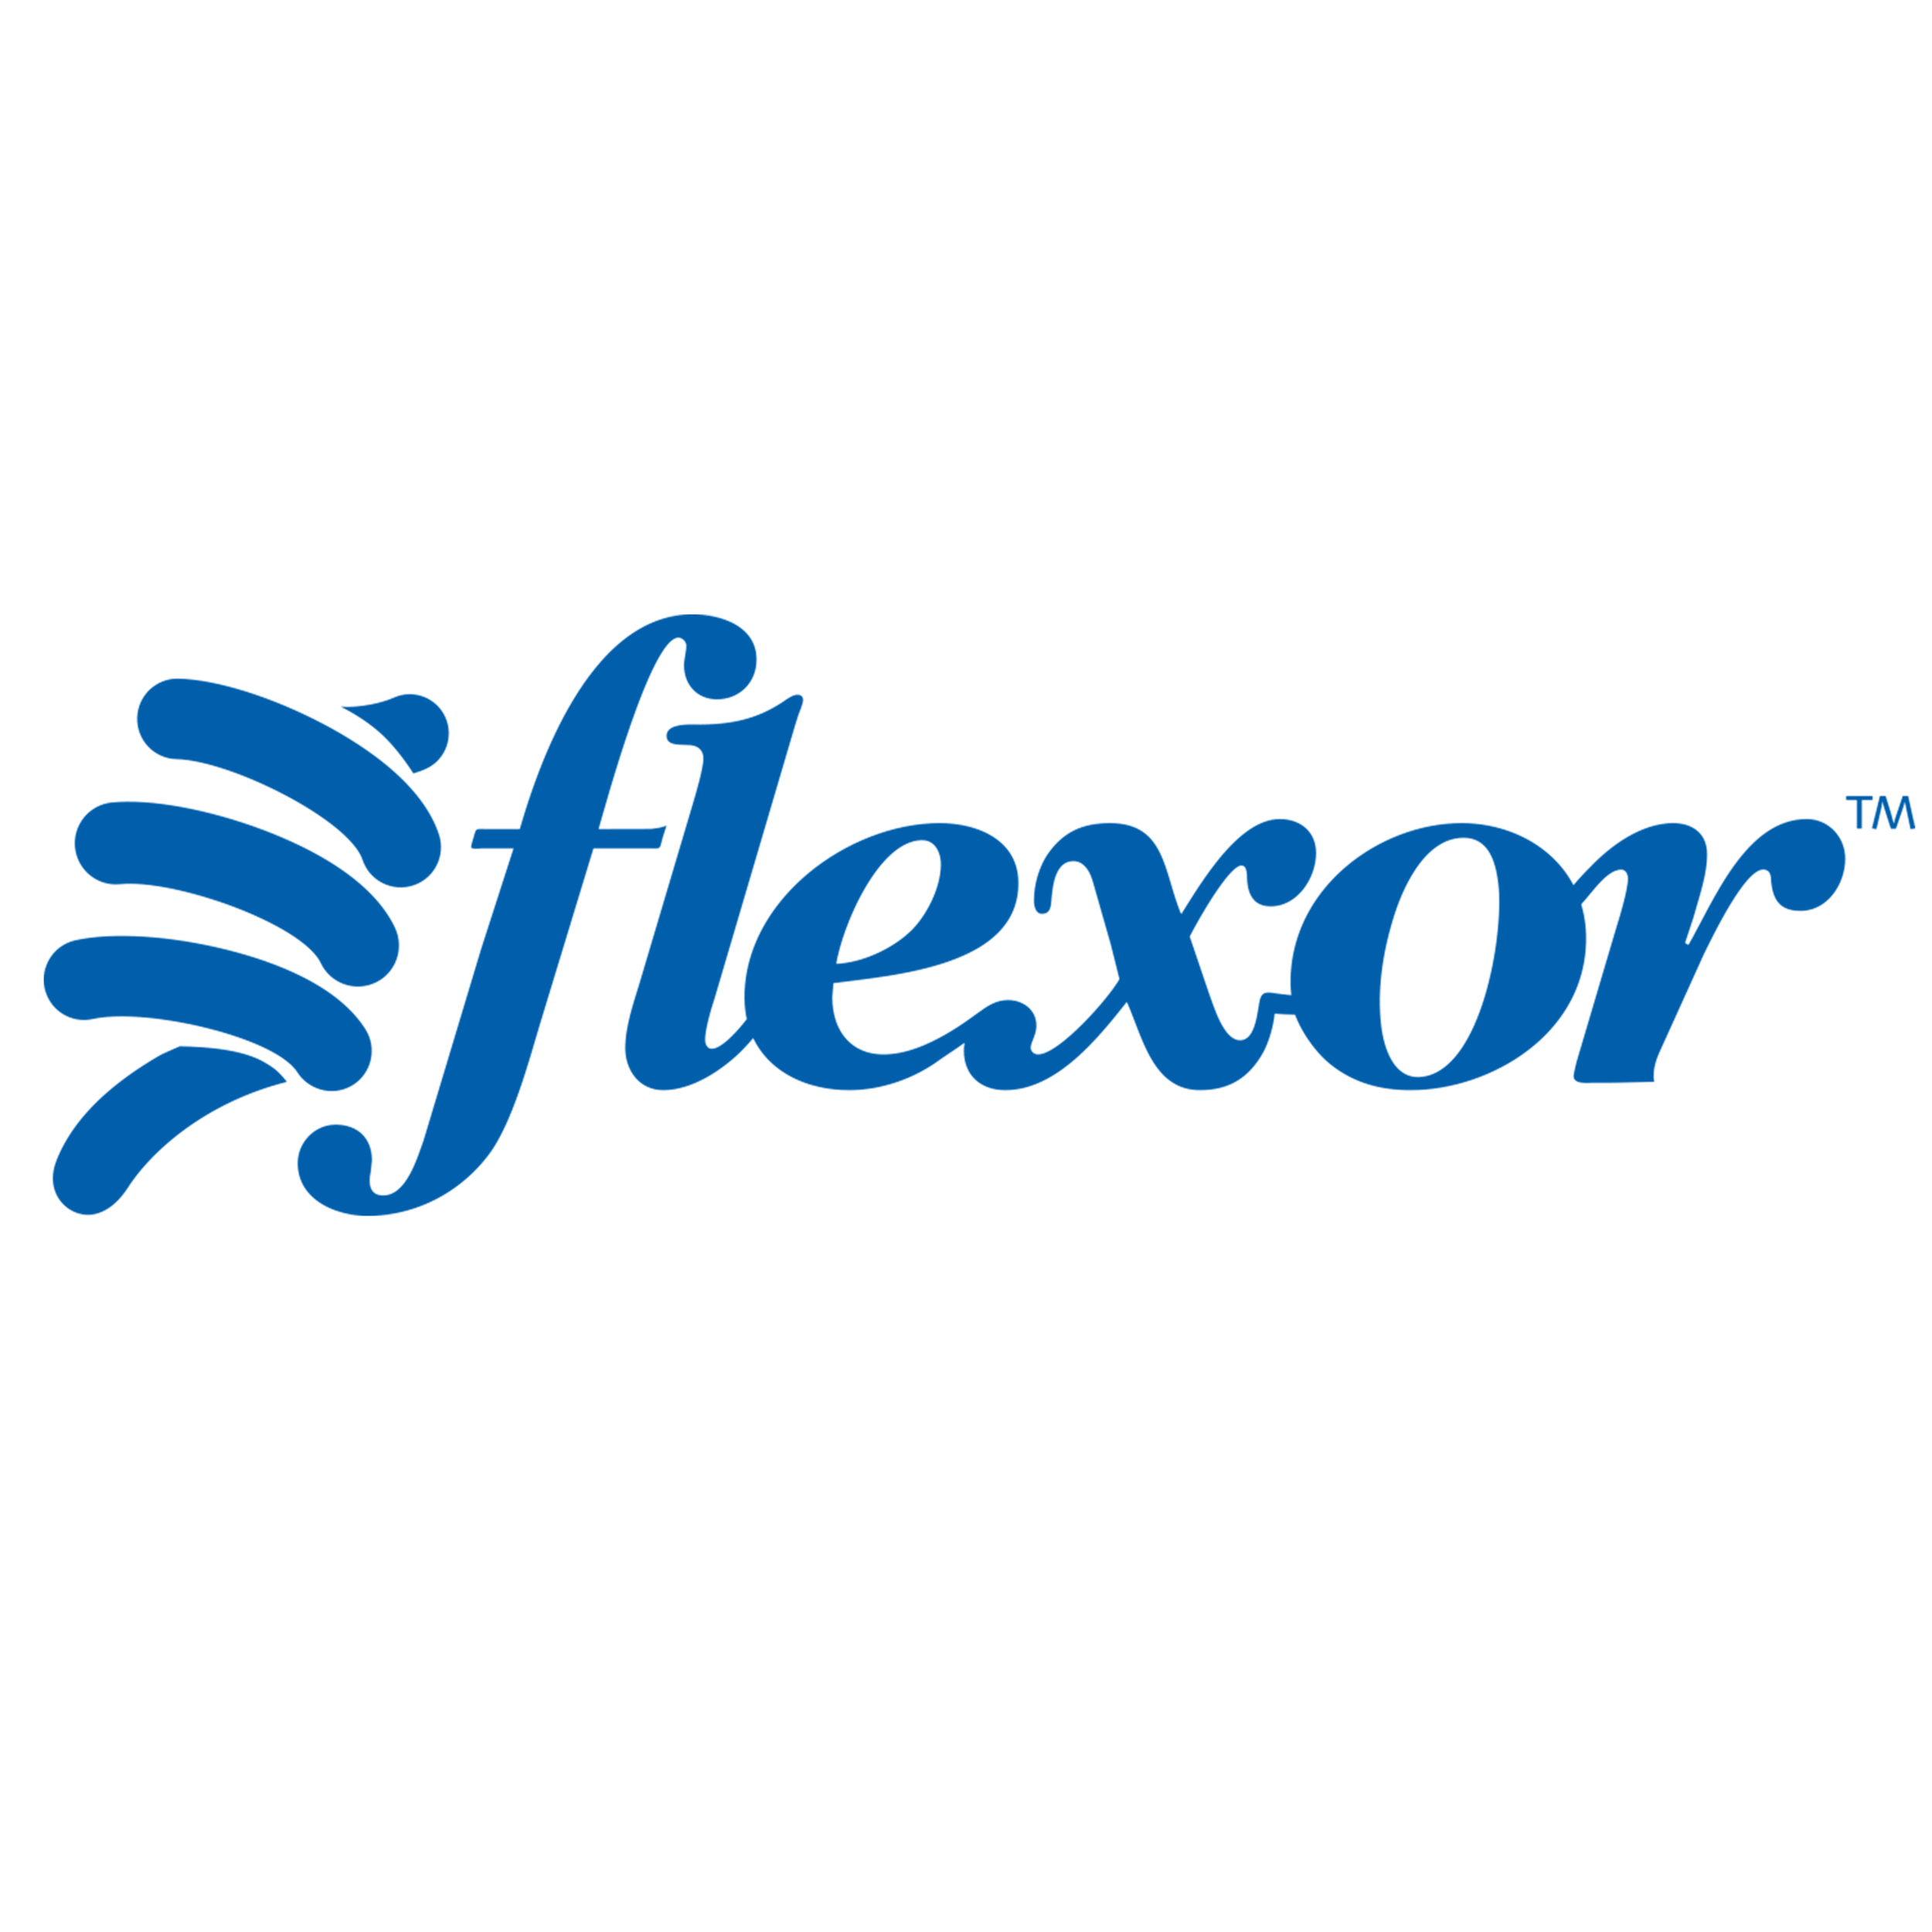 Flexor Sports Training   The name change and rebrand provided this muscle-memory method of golf training the swing it needed.